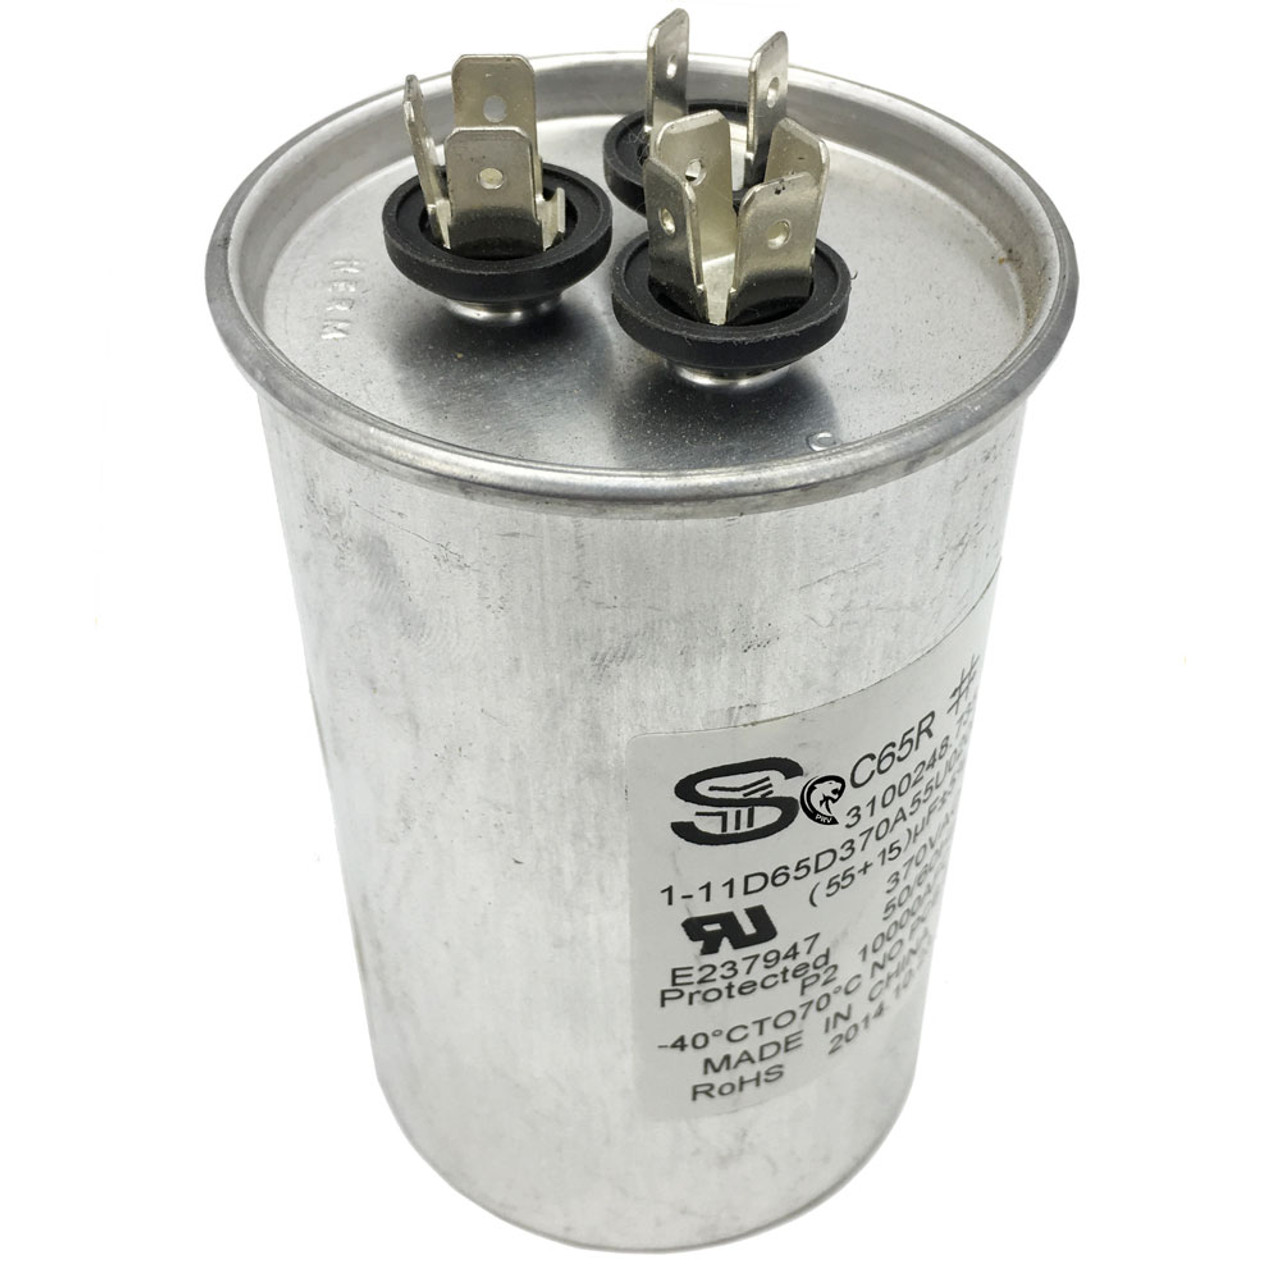 Dometic™ (Duo-Therm) 3314471 017 Air Conditioner Motor Capacitor 55/15 MFD